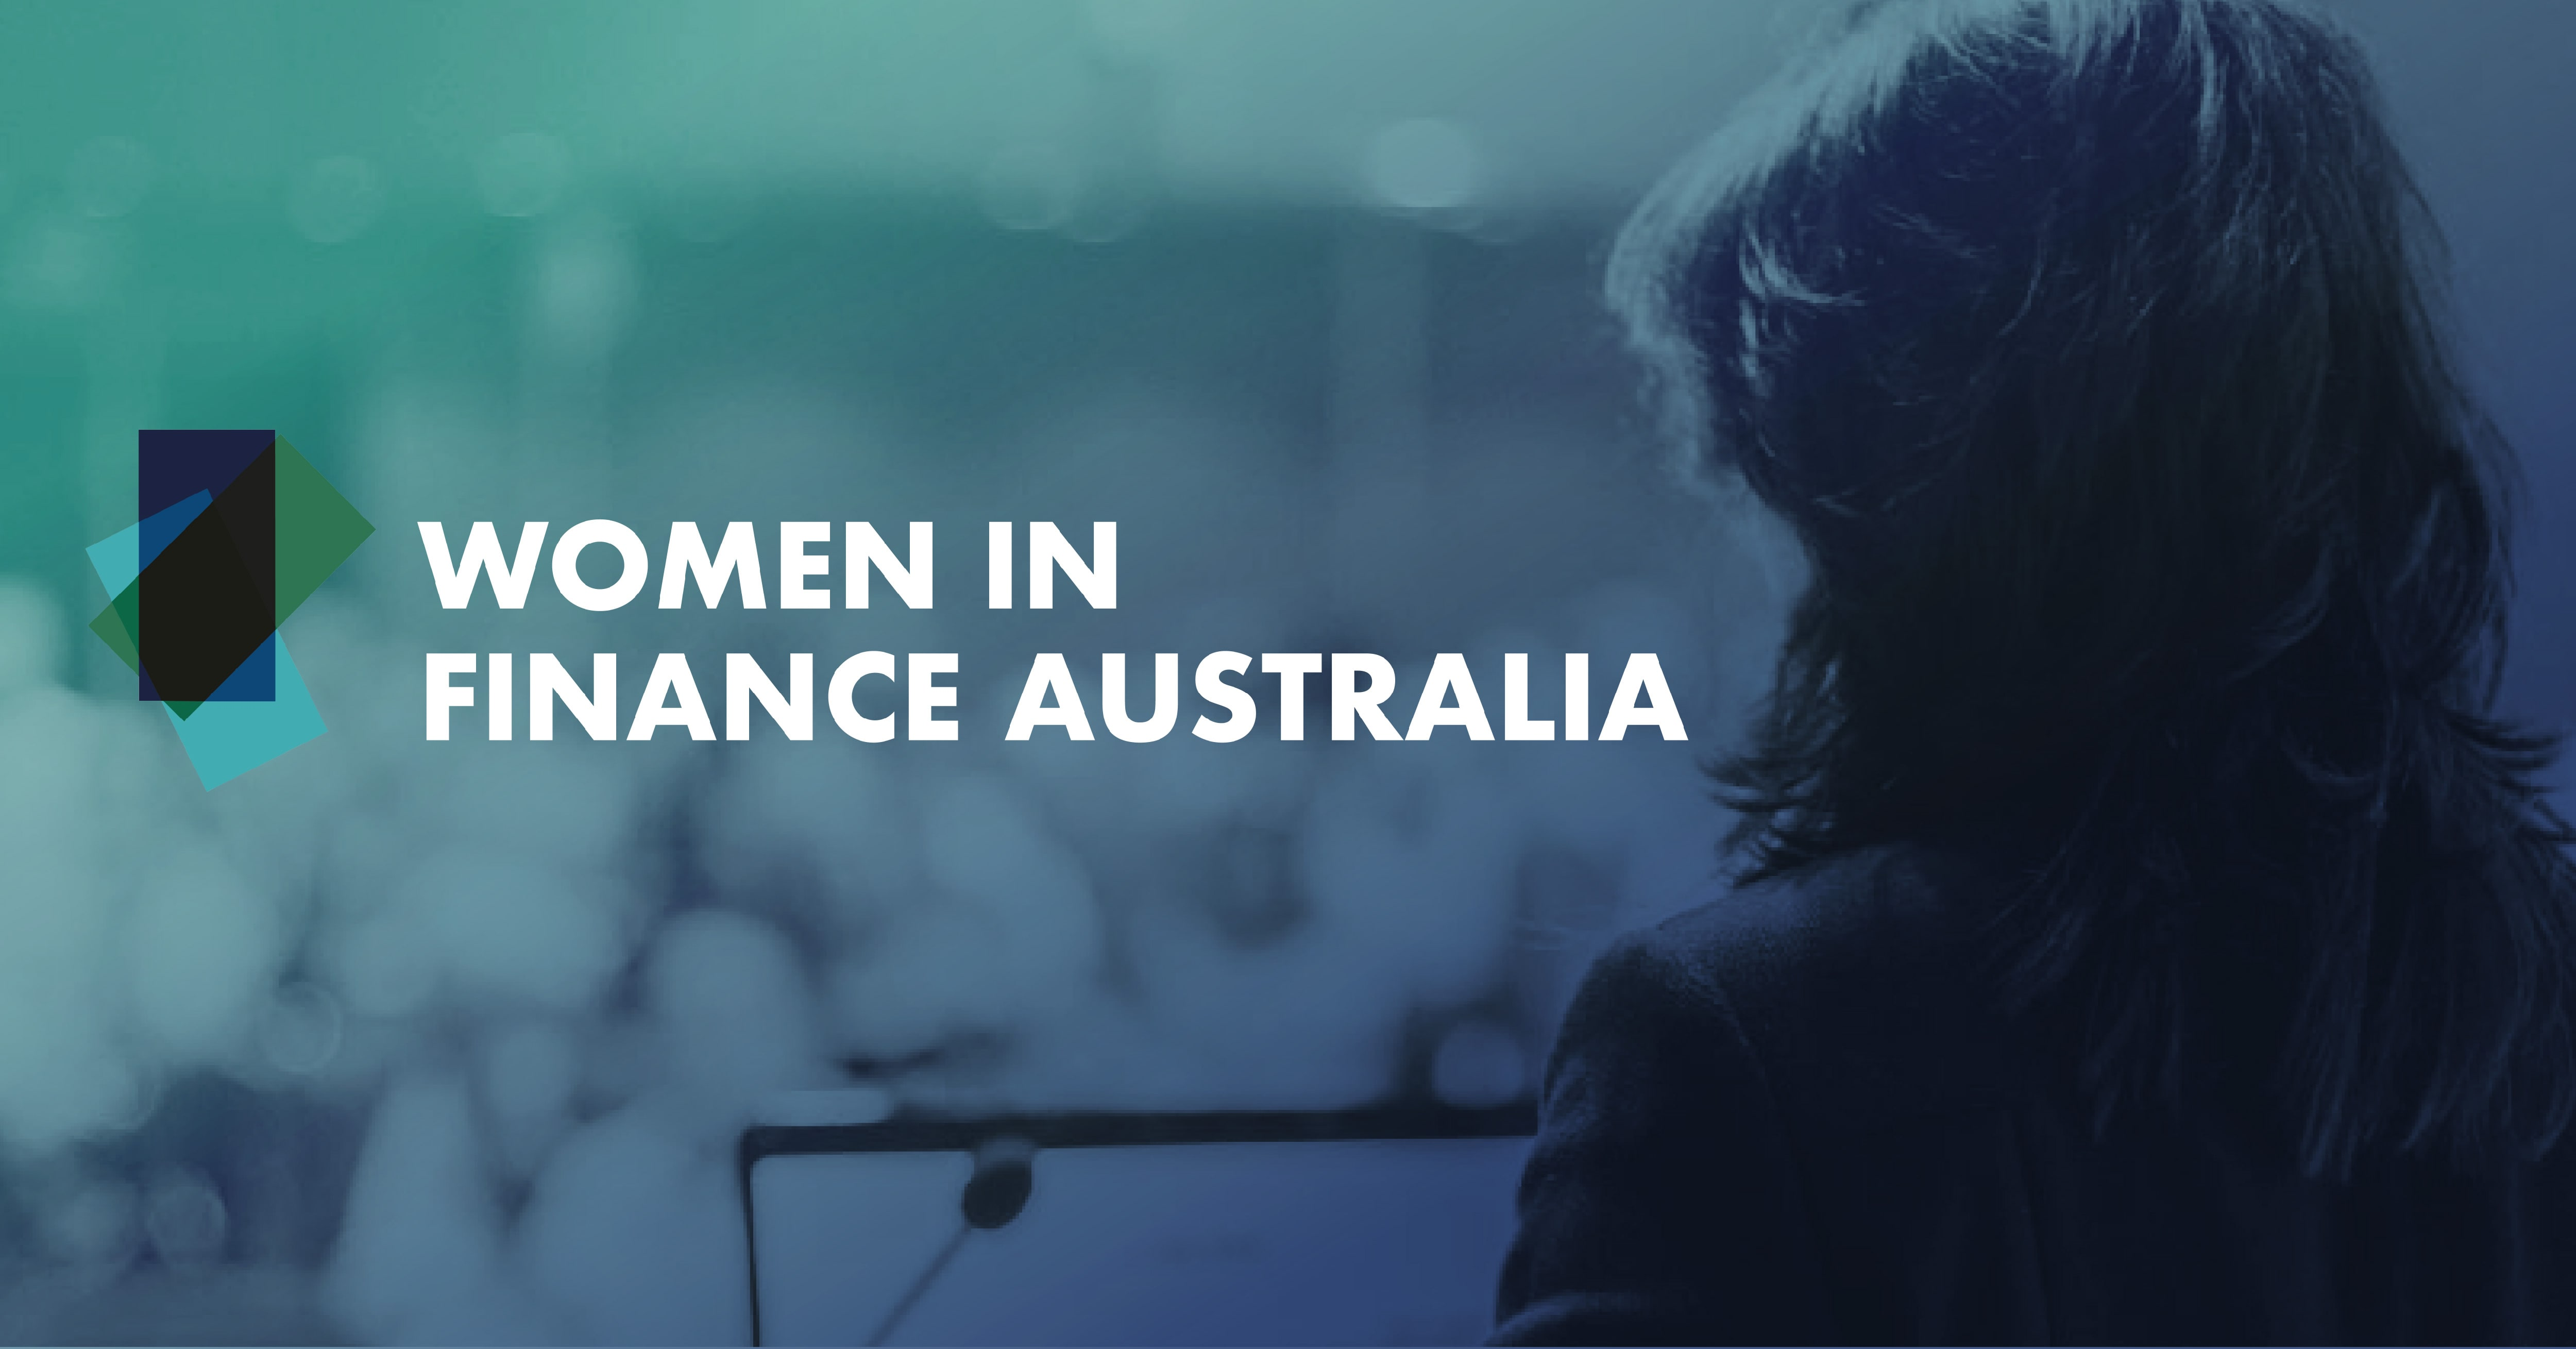 Women in Finance Australia - A Note from the Producer